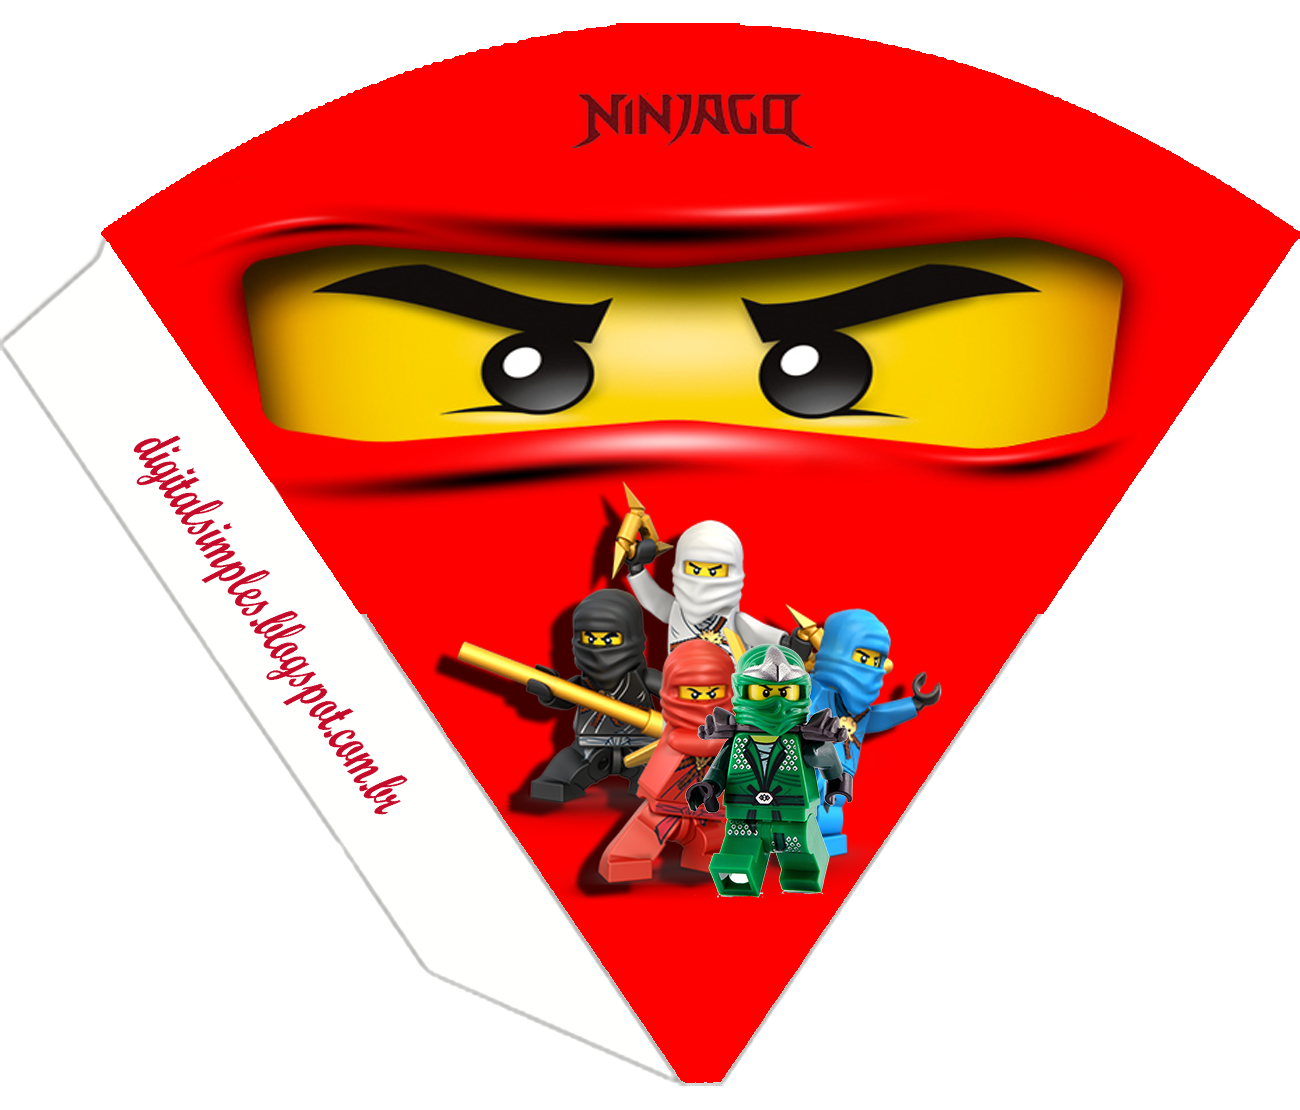 Free Cool Stuff For Superheroes Star Wars Angry Birds Minecraft Sonic Pokemon Lego Dr